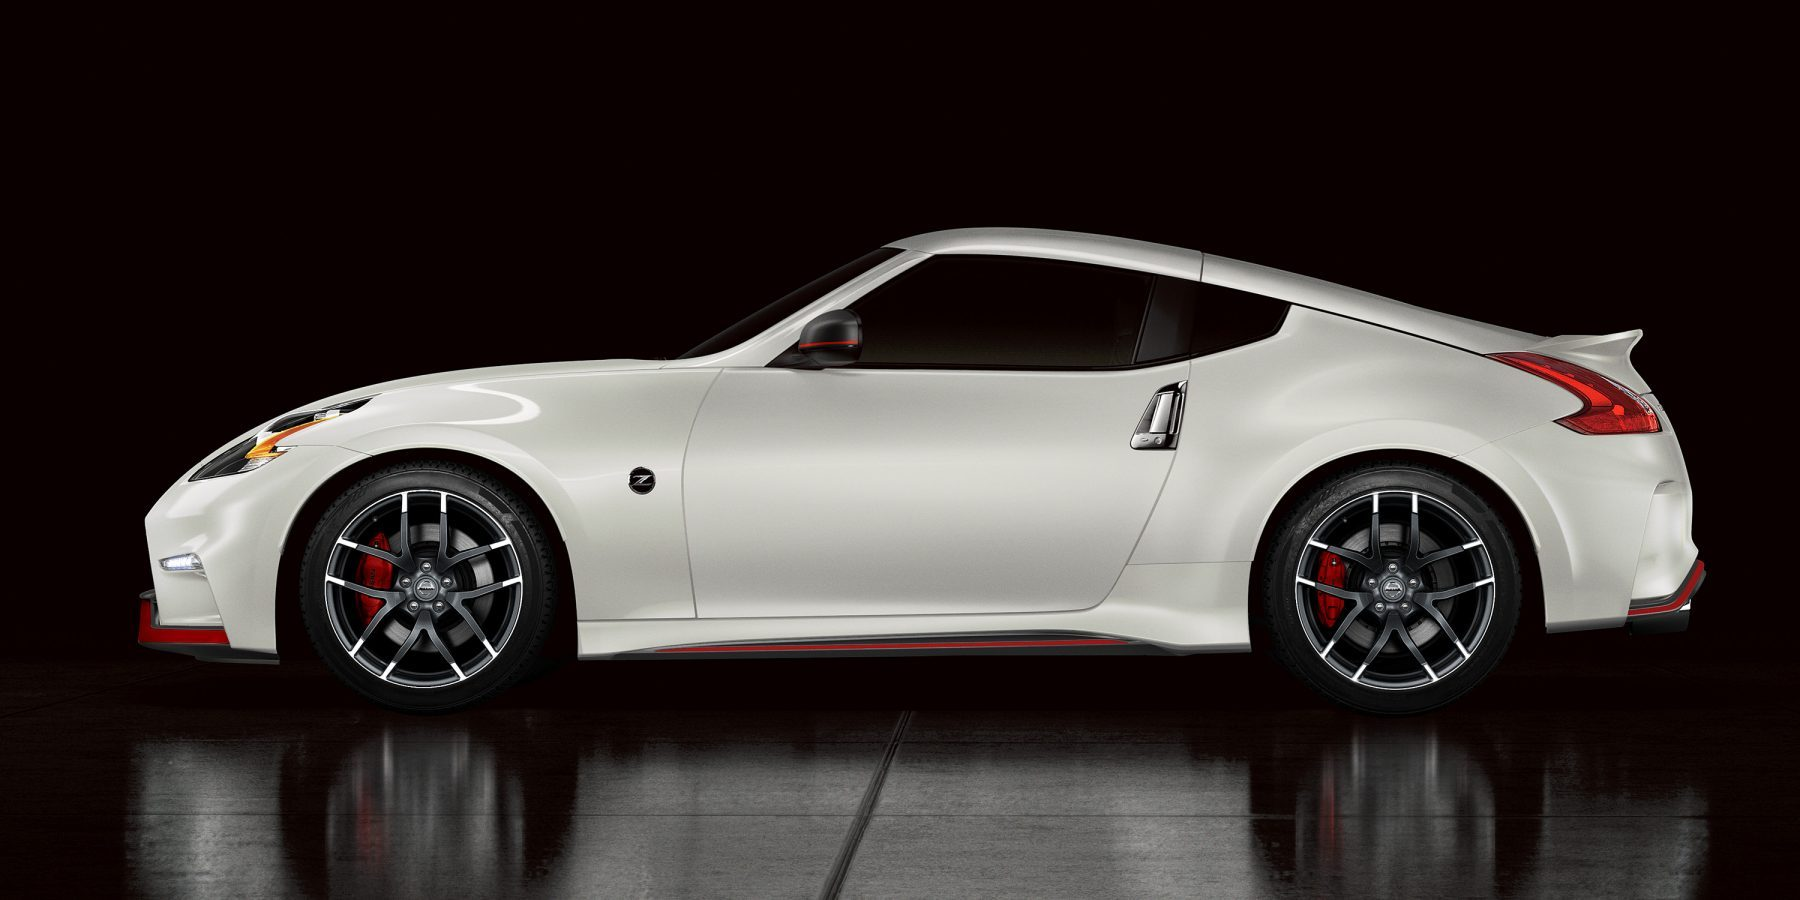 Nissan 370Z Nismo profile on glossy black surface